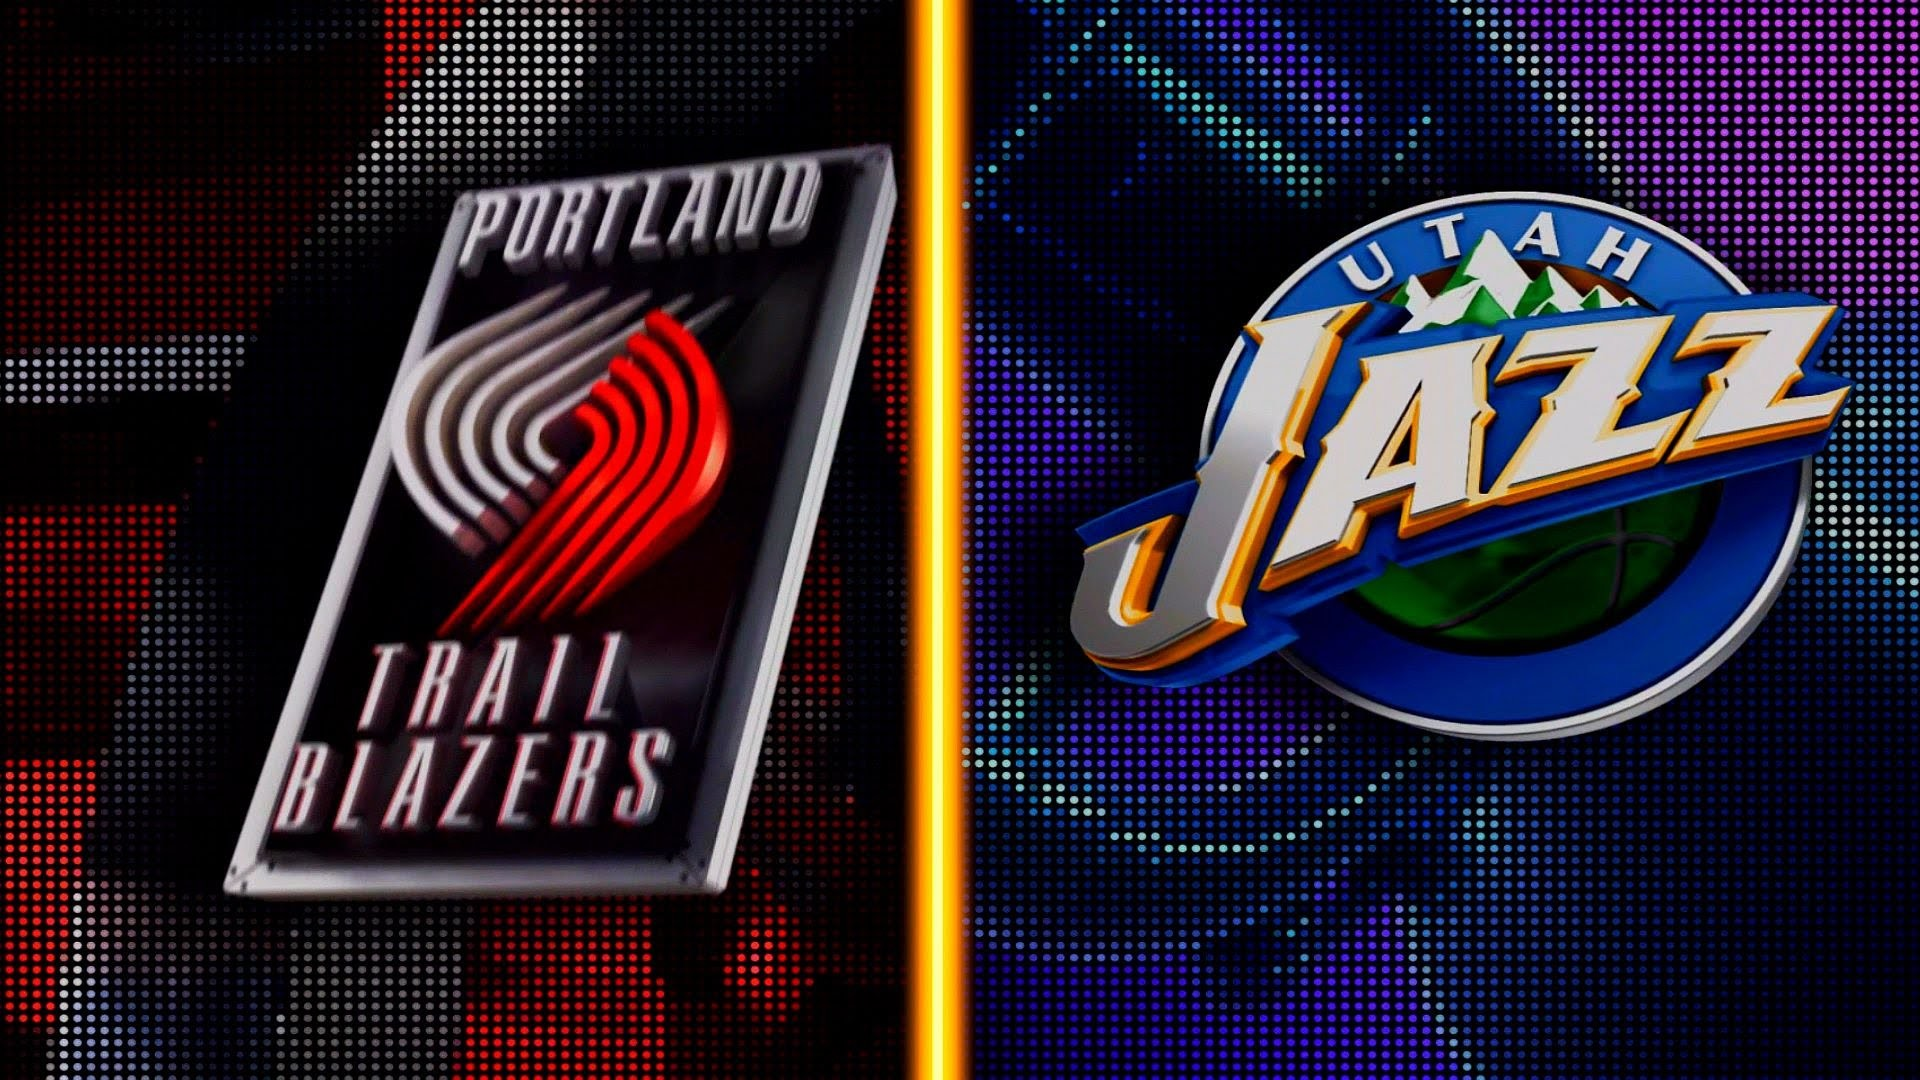 1920x1080 PS4: NBA 2K16 - Portland Trail Blazers vs. Utah Jazz [1080p 60 FPS] -  YouTube